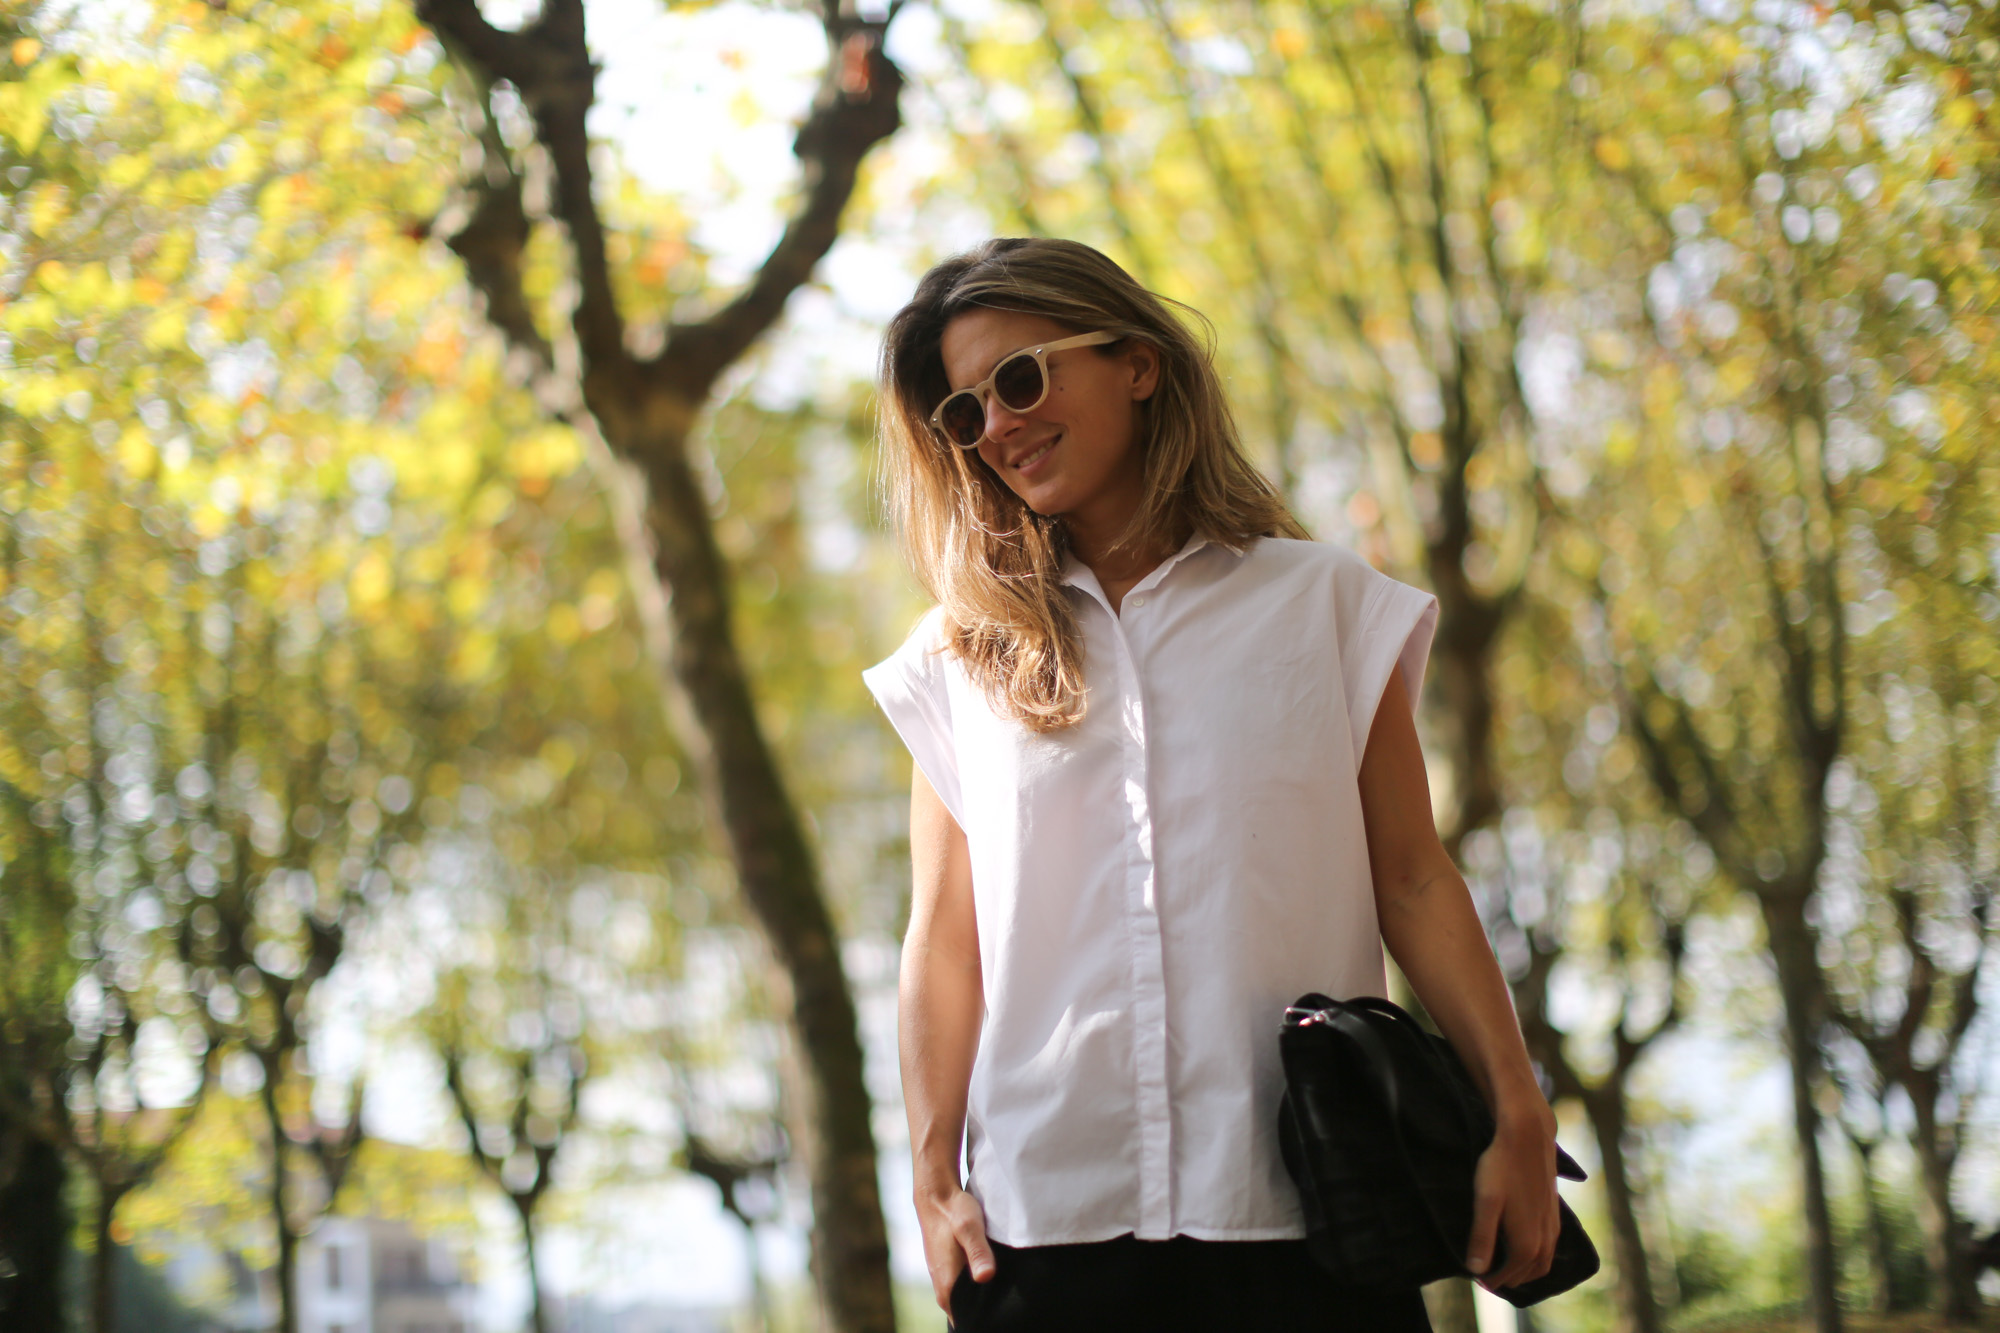 Clochet-streetstyle-zara-white-structured-shirt-culottes-everie-cph-9